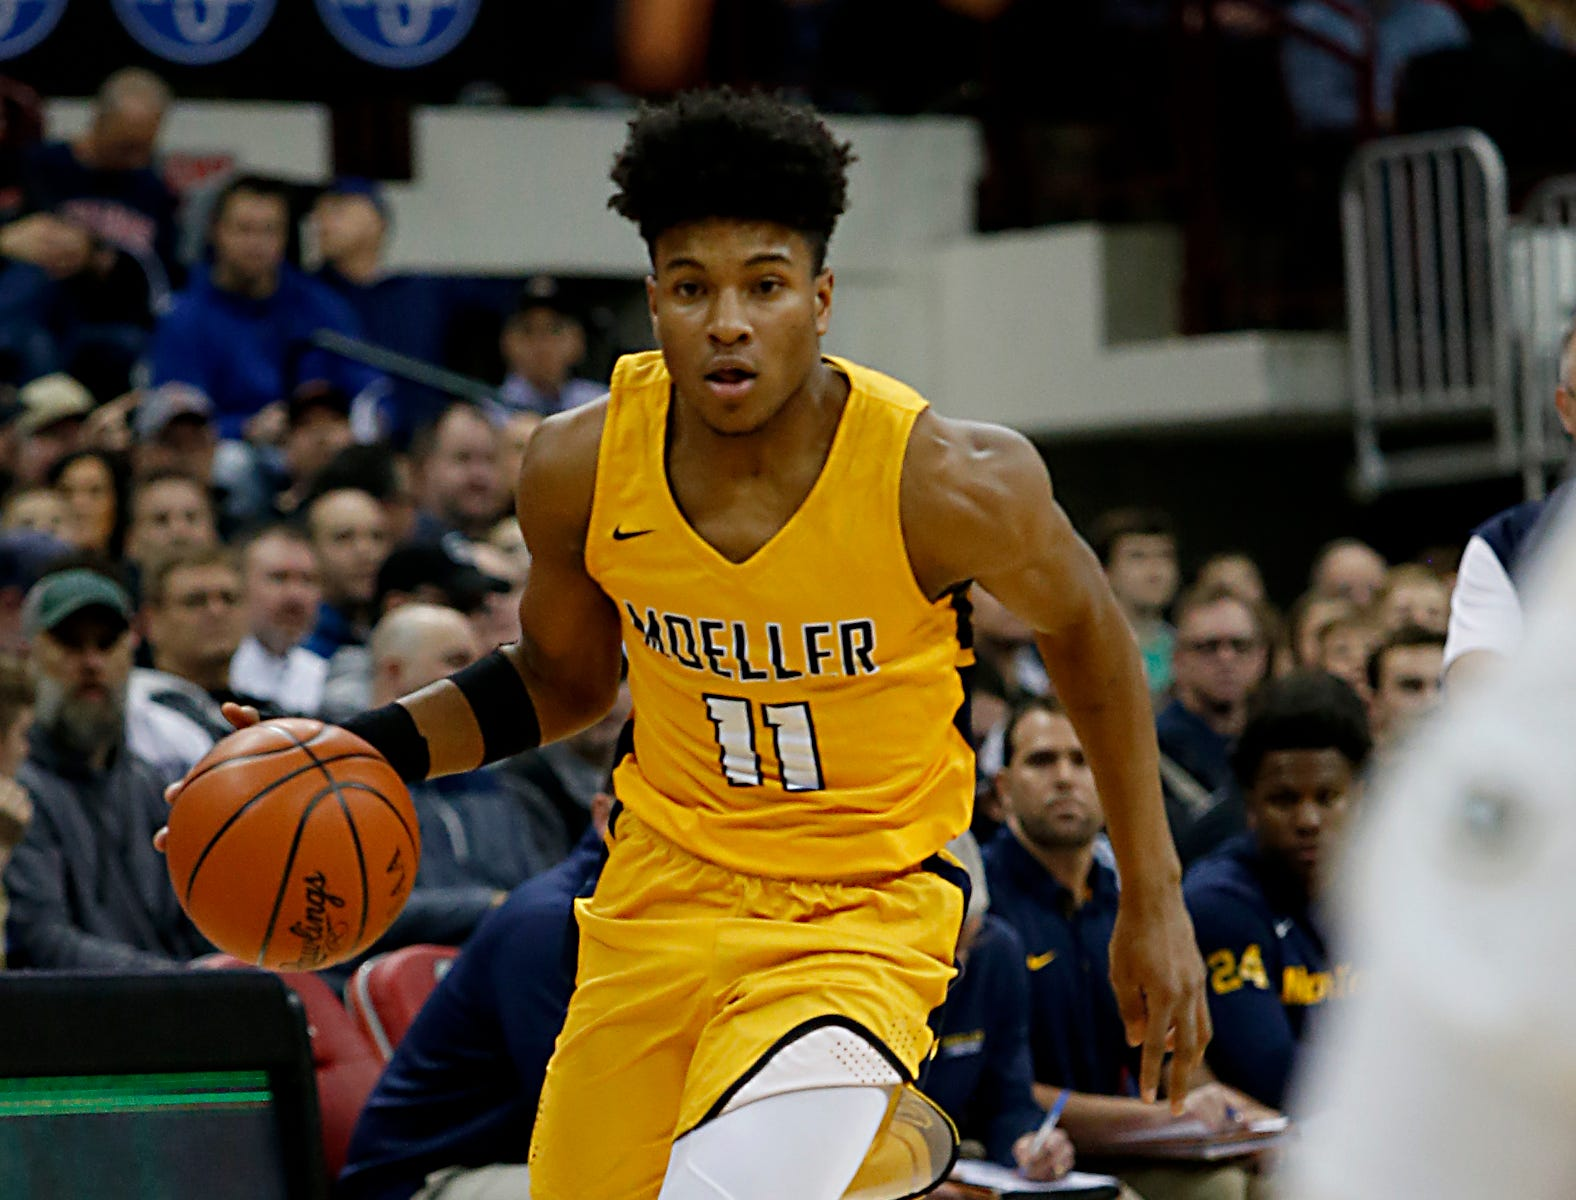 Moeller guard Miles McBride brings the ball upcourt against St. Edward during their Division I semifinal at the Schottenstein Center in Columbus Friday, March 22, 2019.